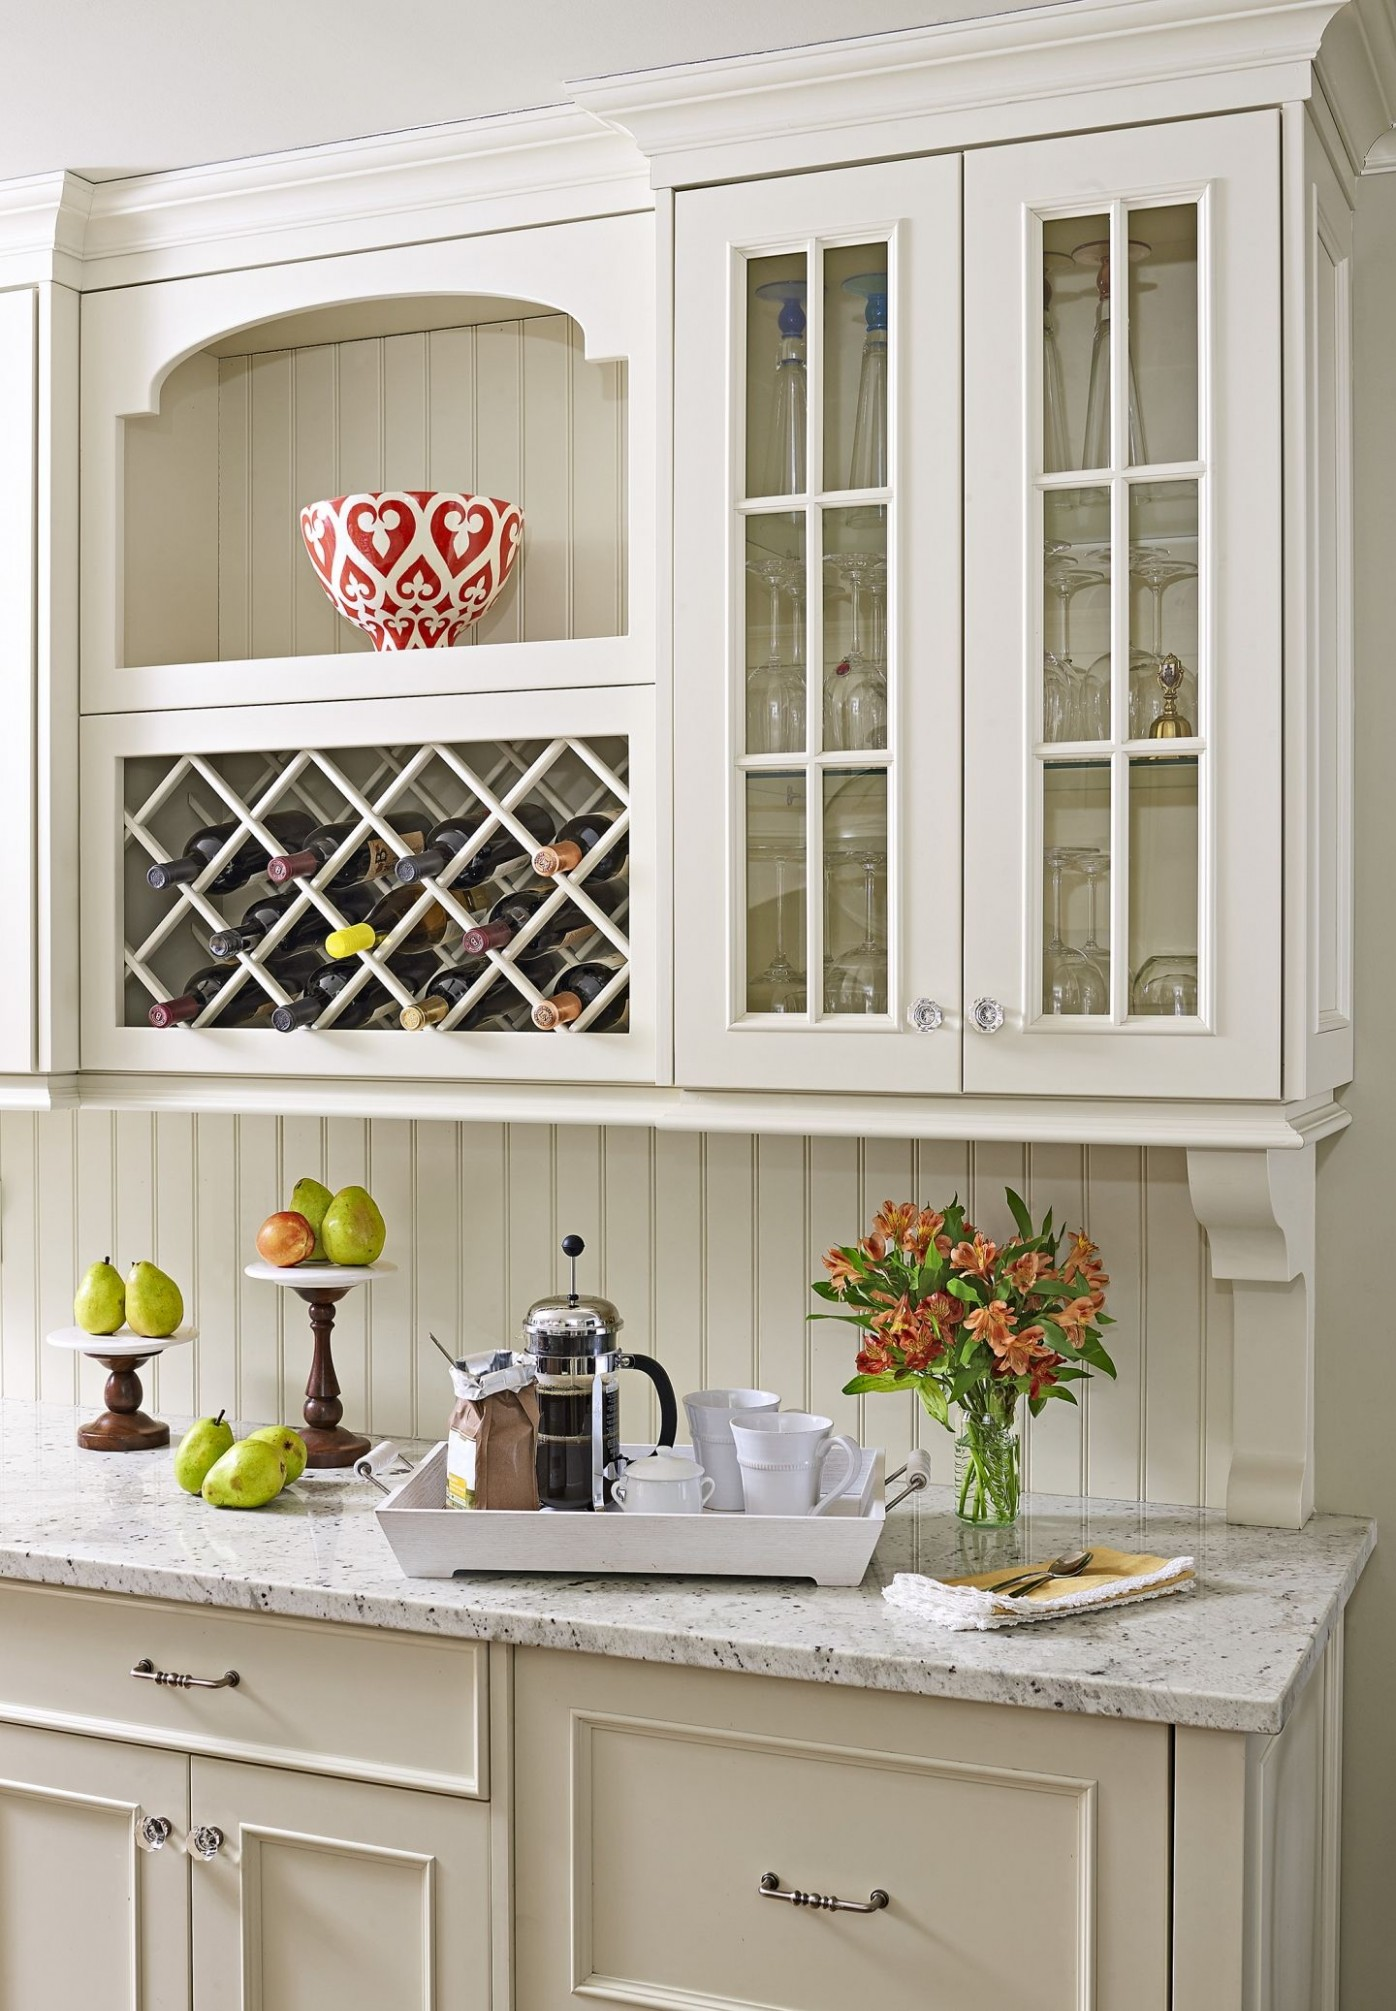 Marble countertops, a beadboard backsplash, and glass-front  - 1950S Kitchen Cabinets Corbel